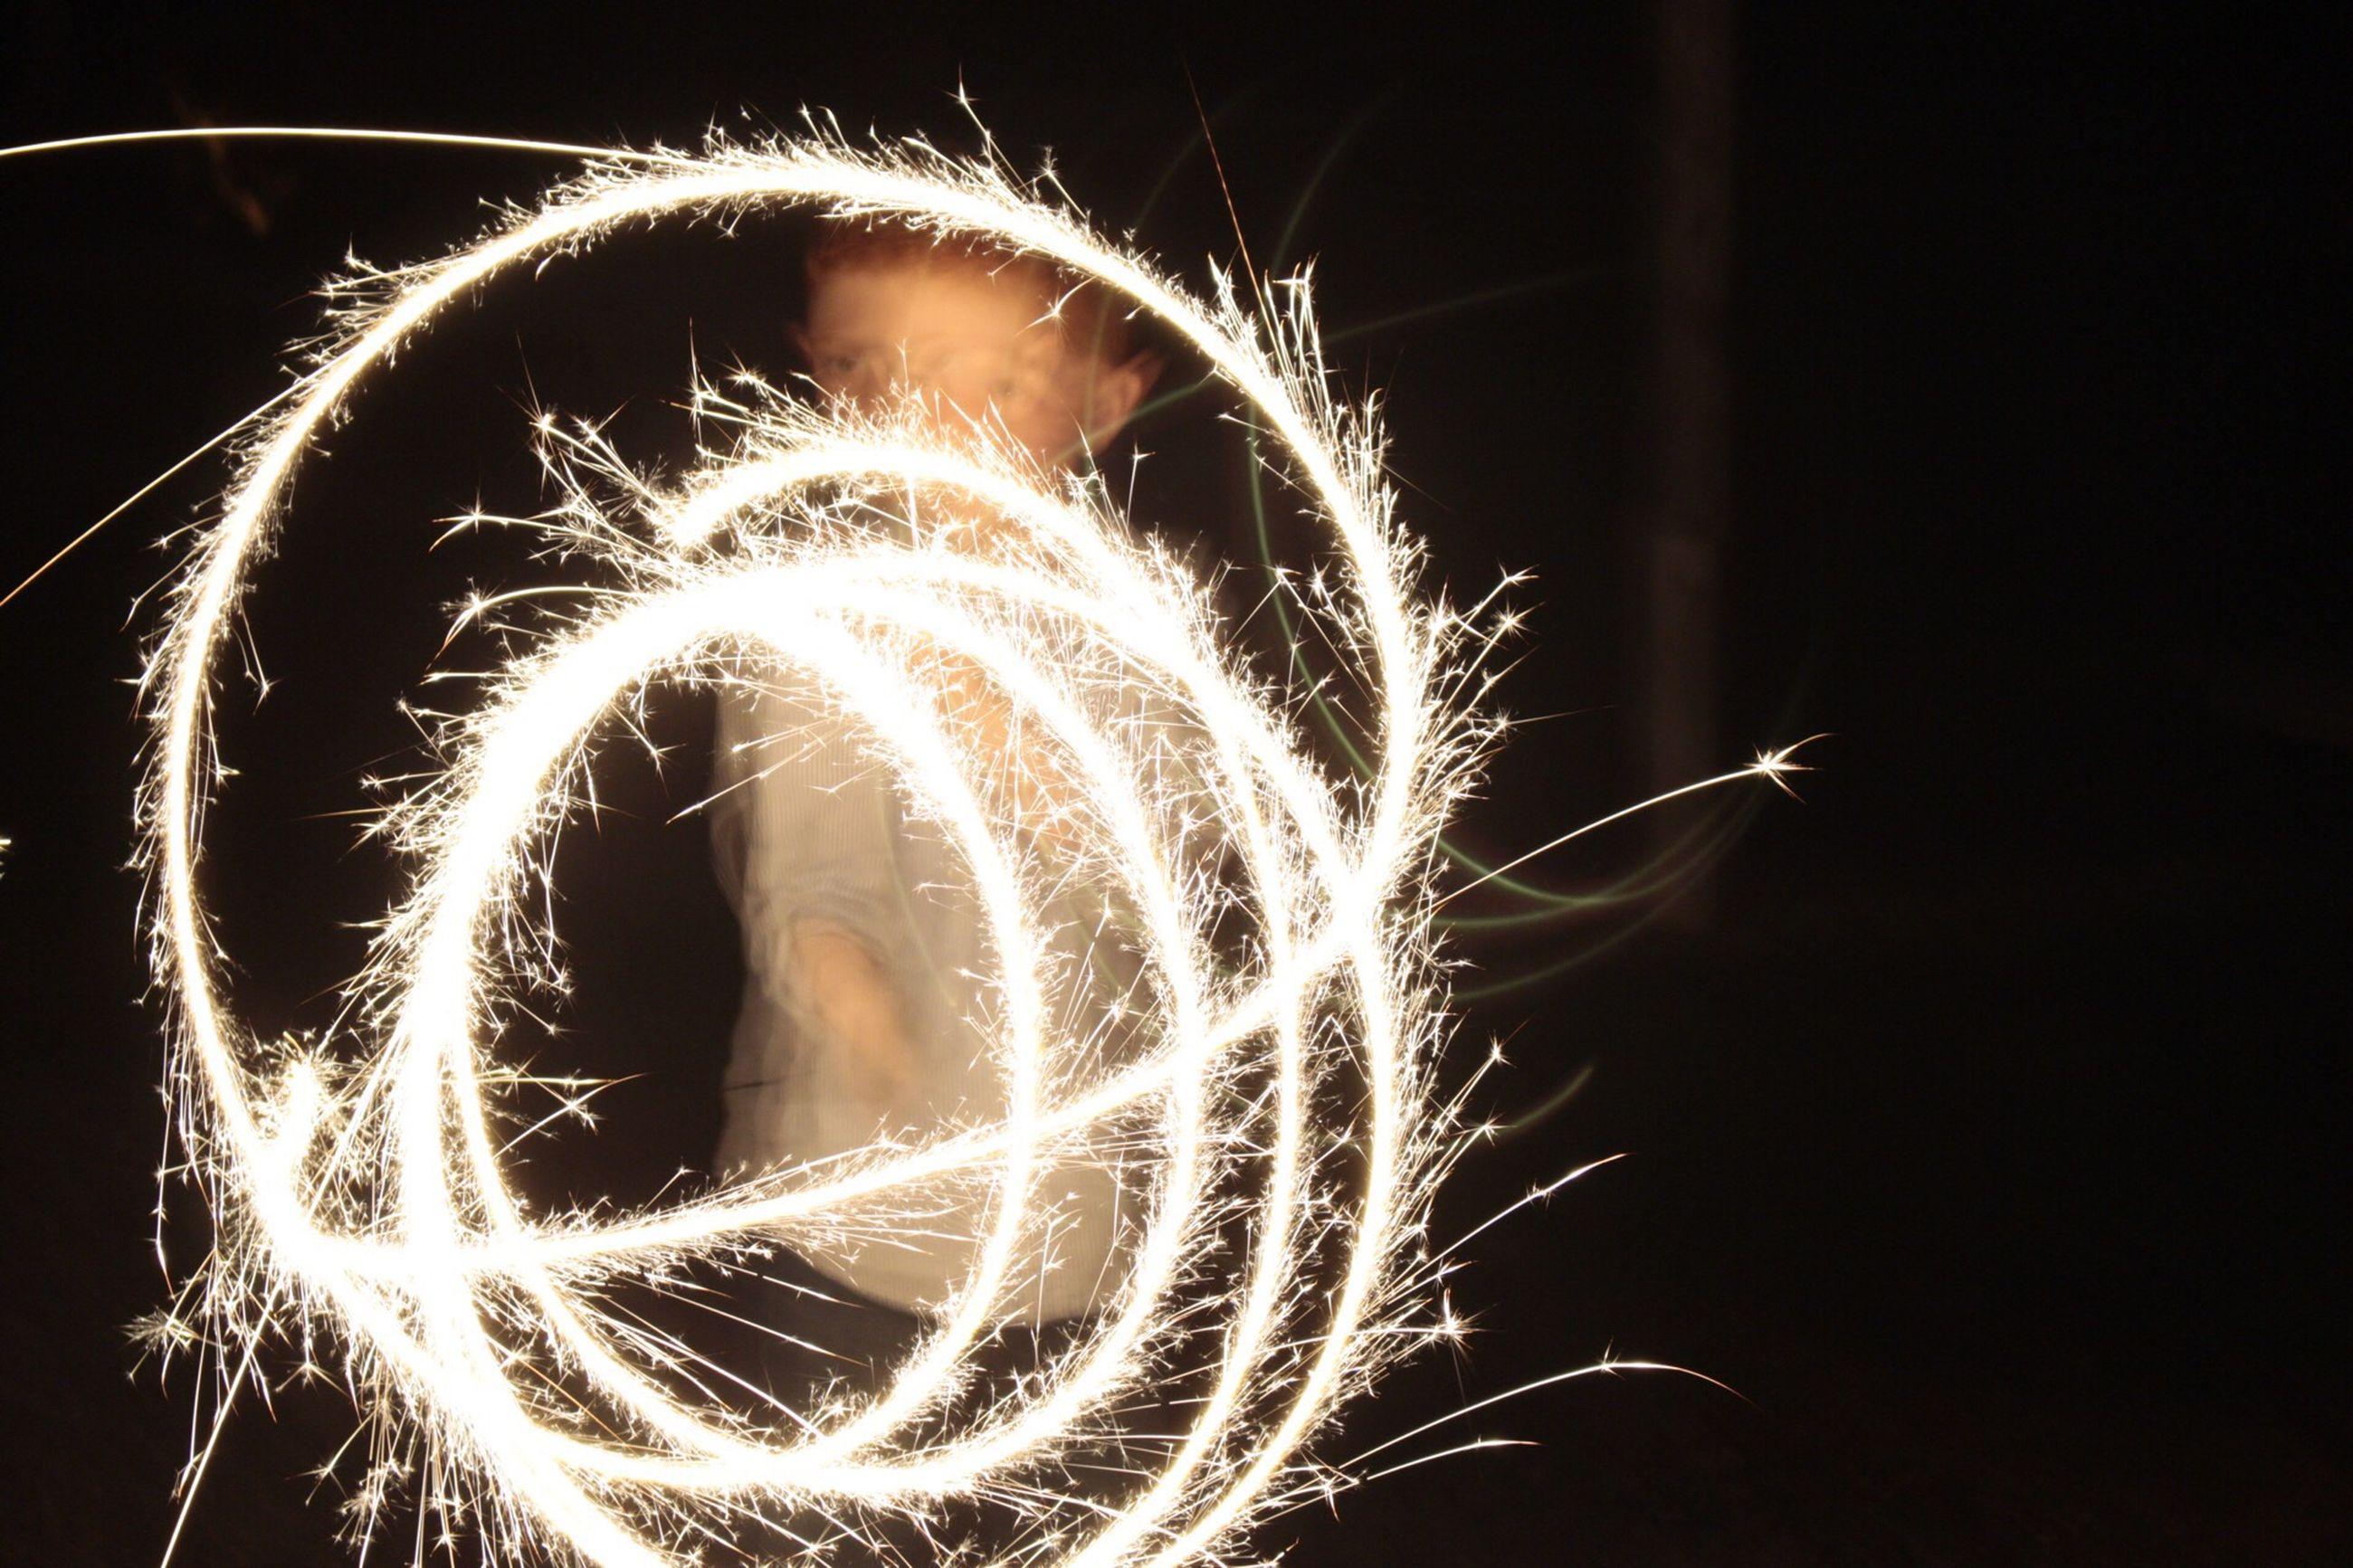 long exposure, motion, sparks, night, celebration, glowing, firework - man made object, firework display, sparkler, illuminated, no people, arts culture and entertainment, wire wool, close-up, outdoors